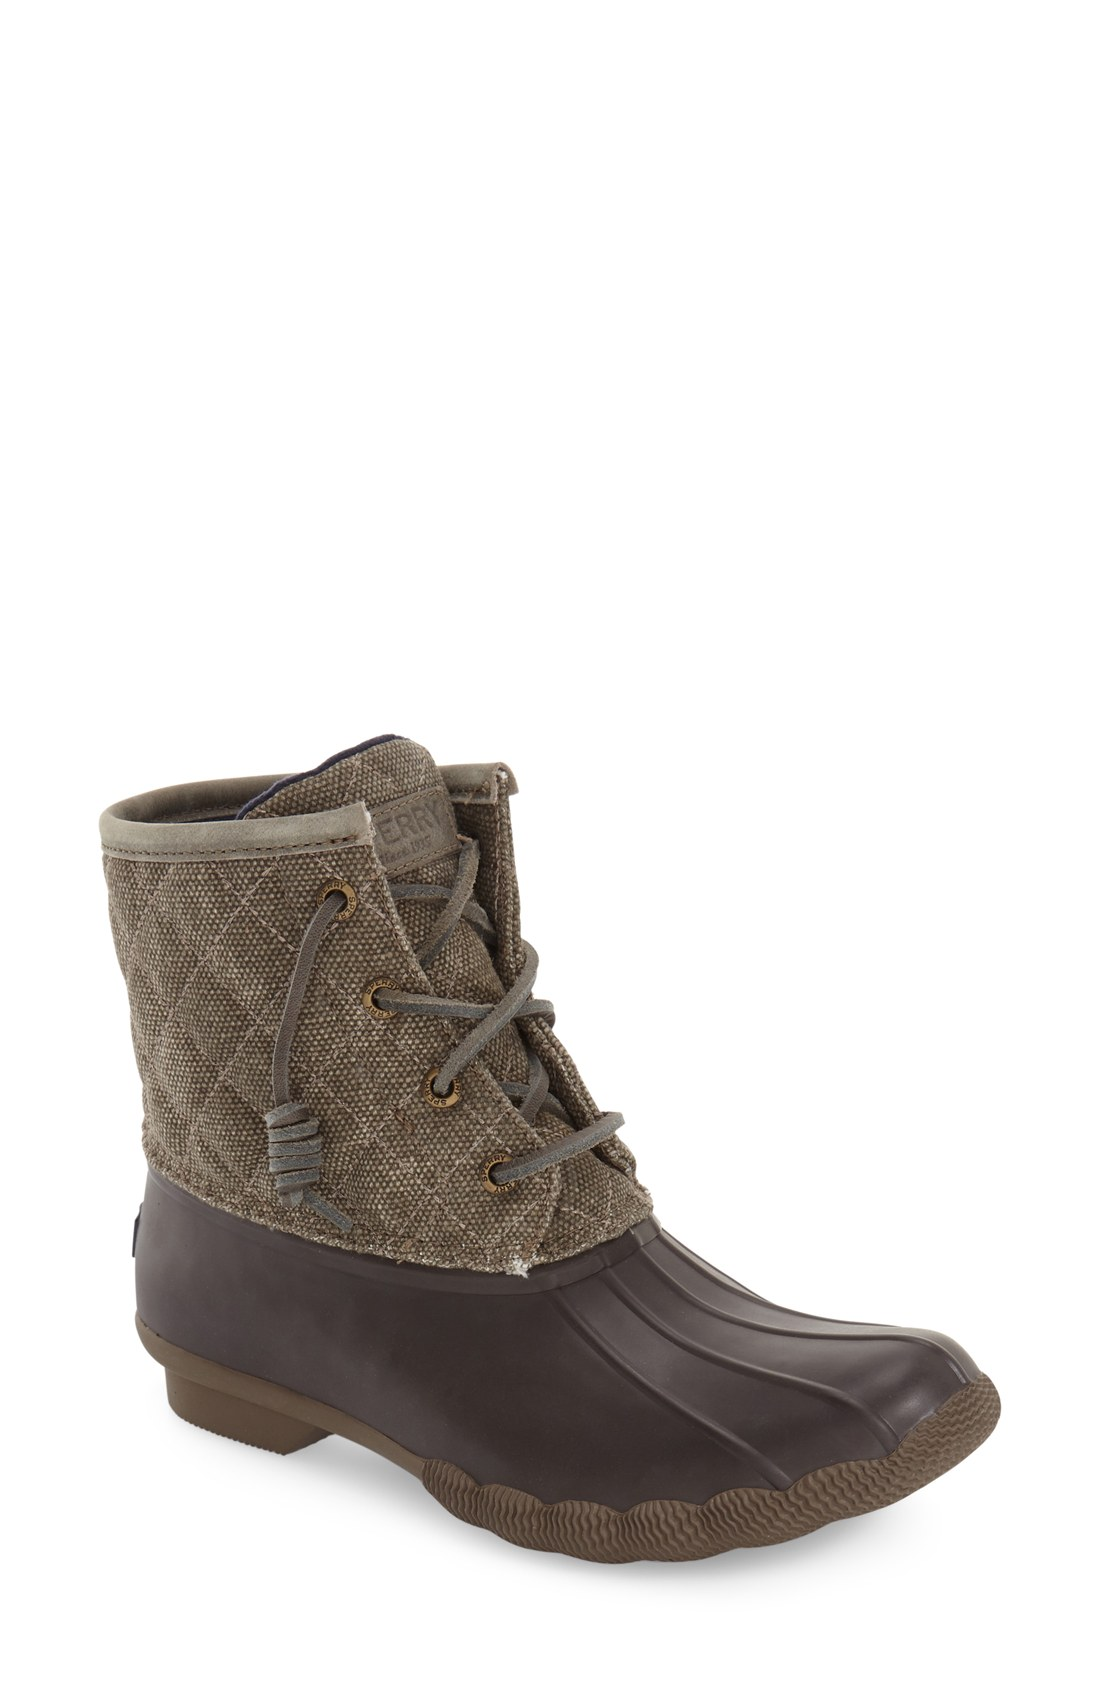 Sperry Rain Boots Sale xi4NUCzj